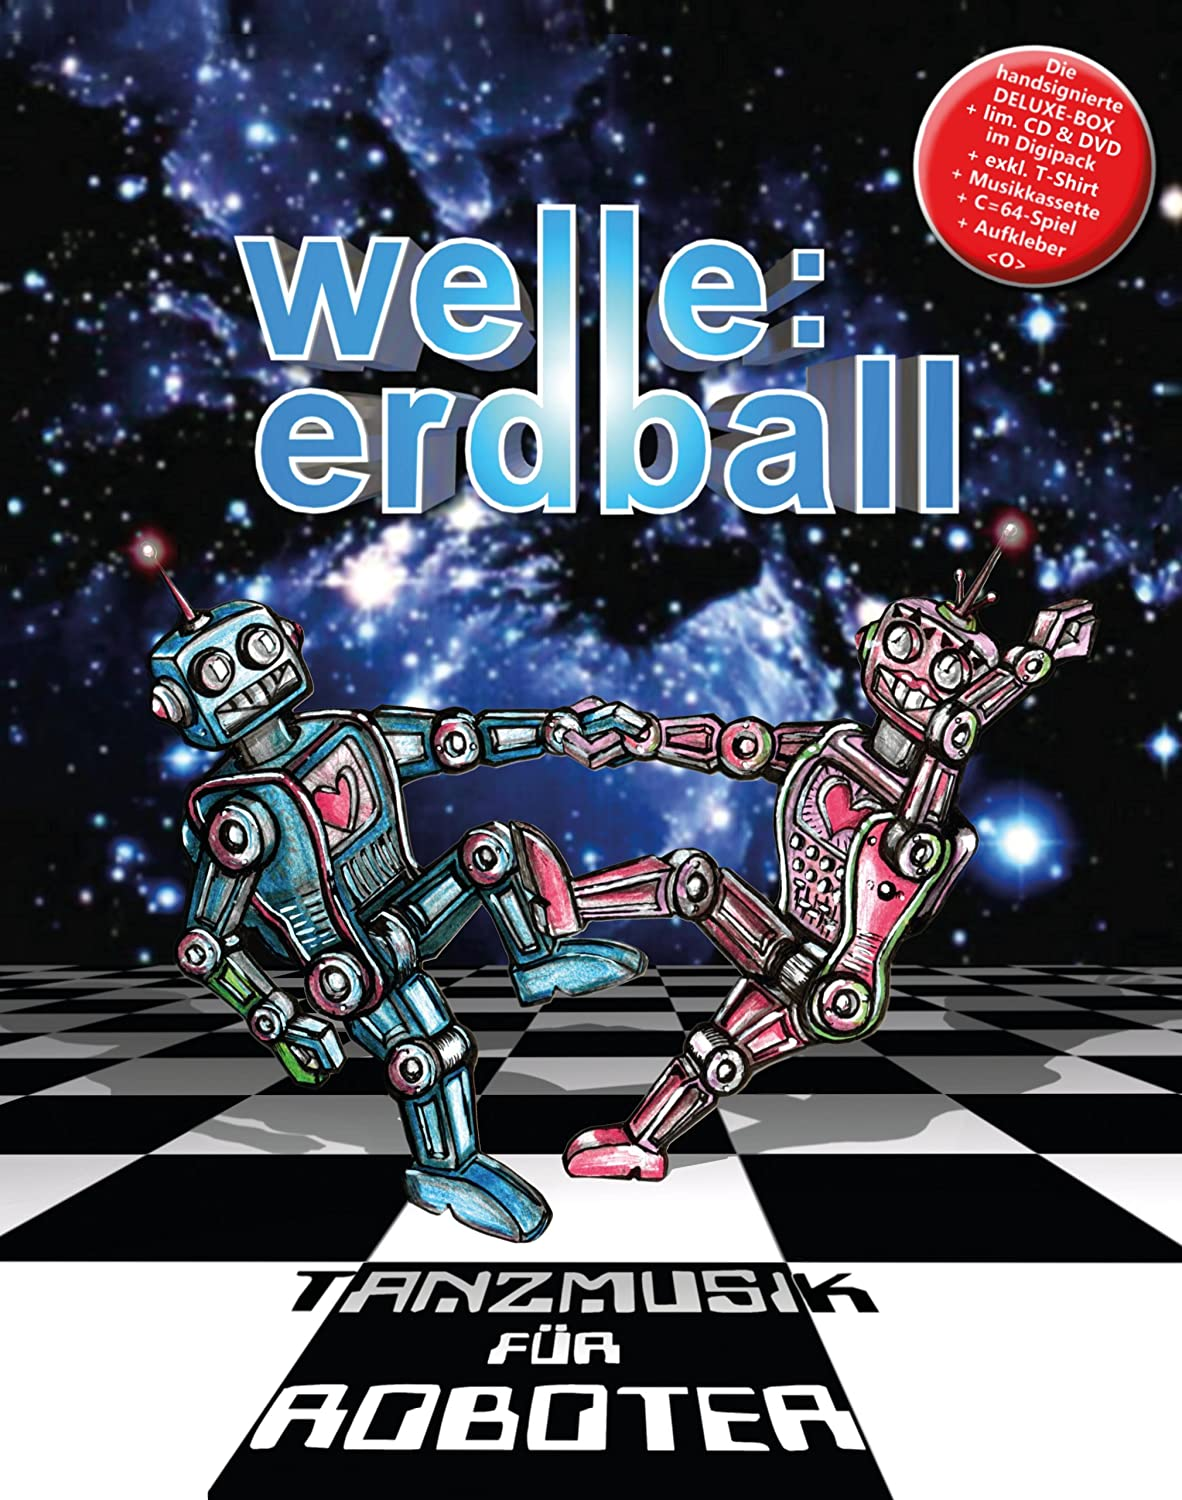 Welle Erdball-Tanzmusik Fuer Roboter-DVD-Limited Edition-2014-FWYH Download